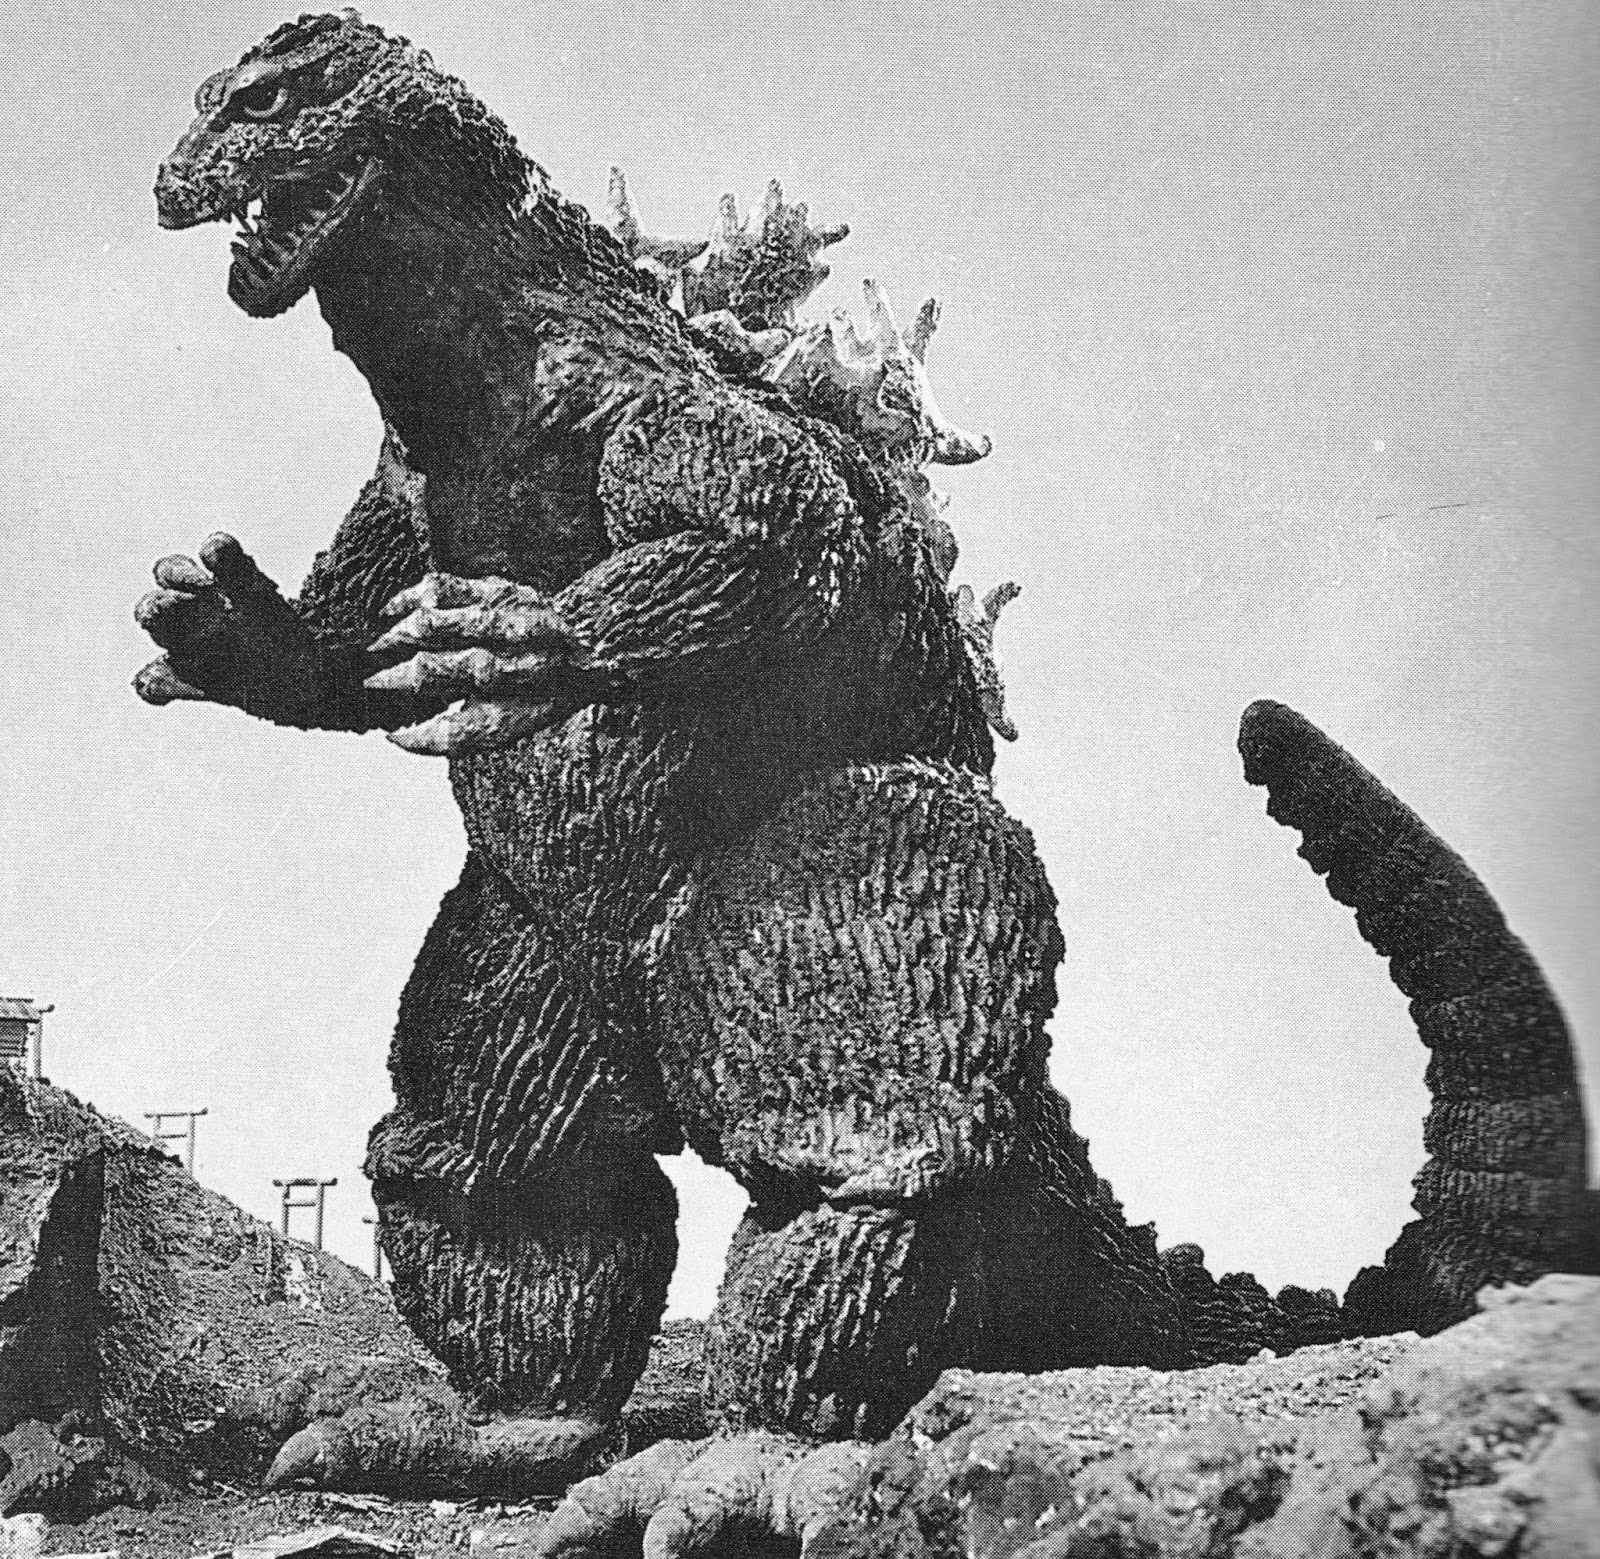 Baker's Log: Pix From Godzilla Movies. Just Because